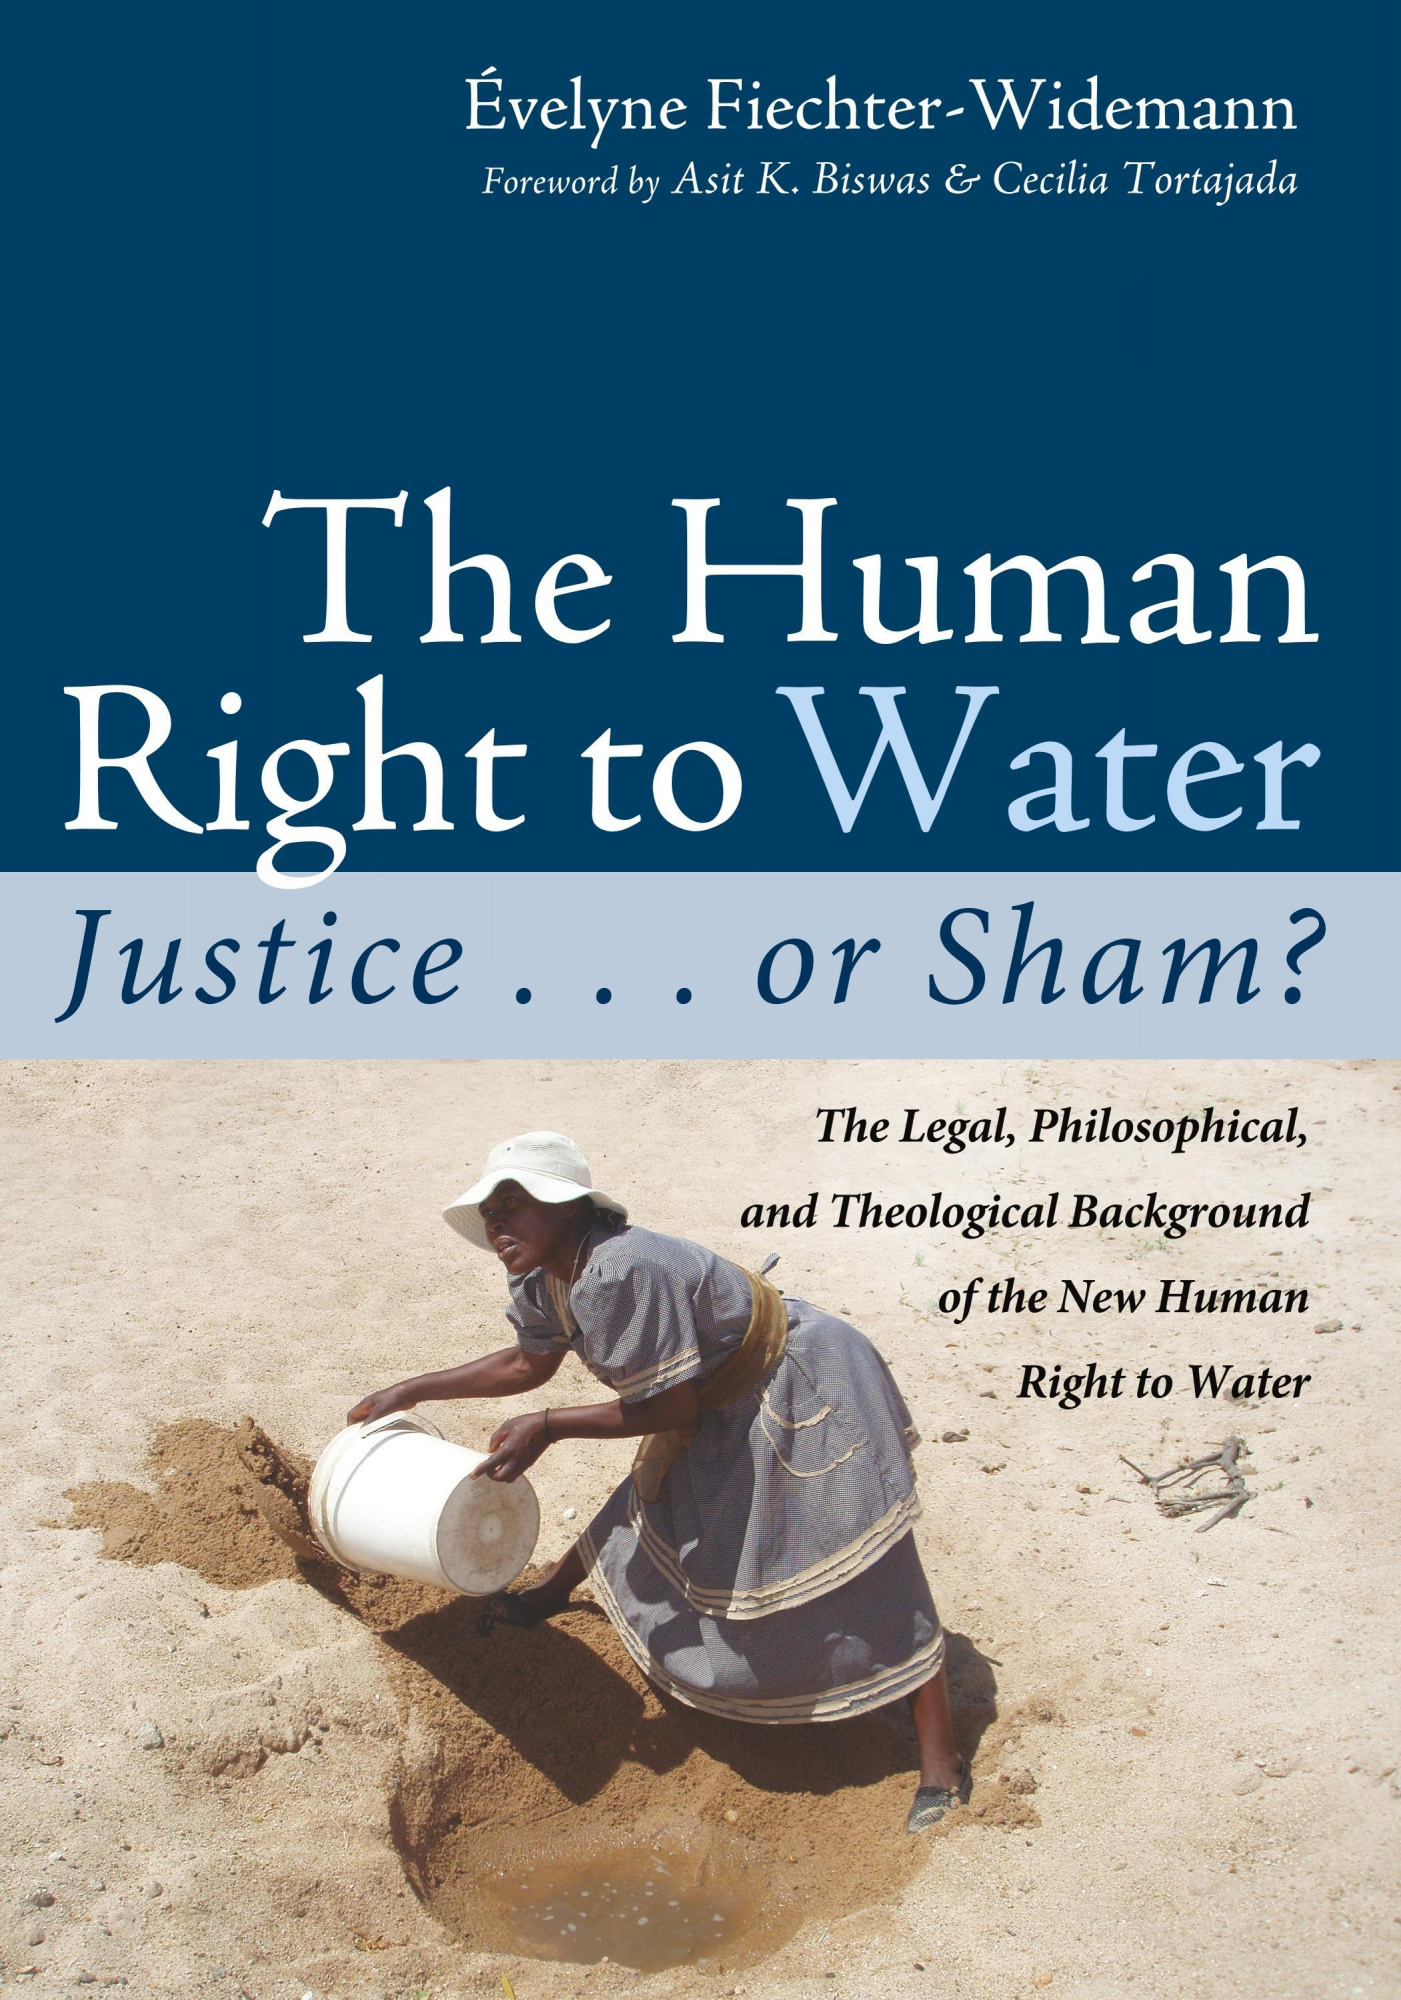 The Human Right to Water: Justice . . . or Sham?: The Legal, Philosophical, and Theological Background of the New Human Right to Water by Fiechter-Widemann, Evelyne, ISBN: 9781498294065